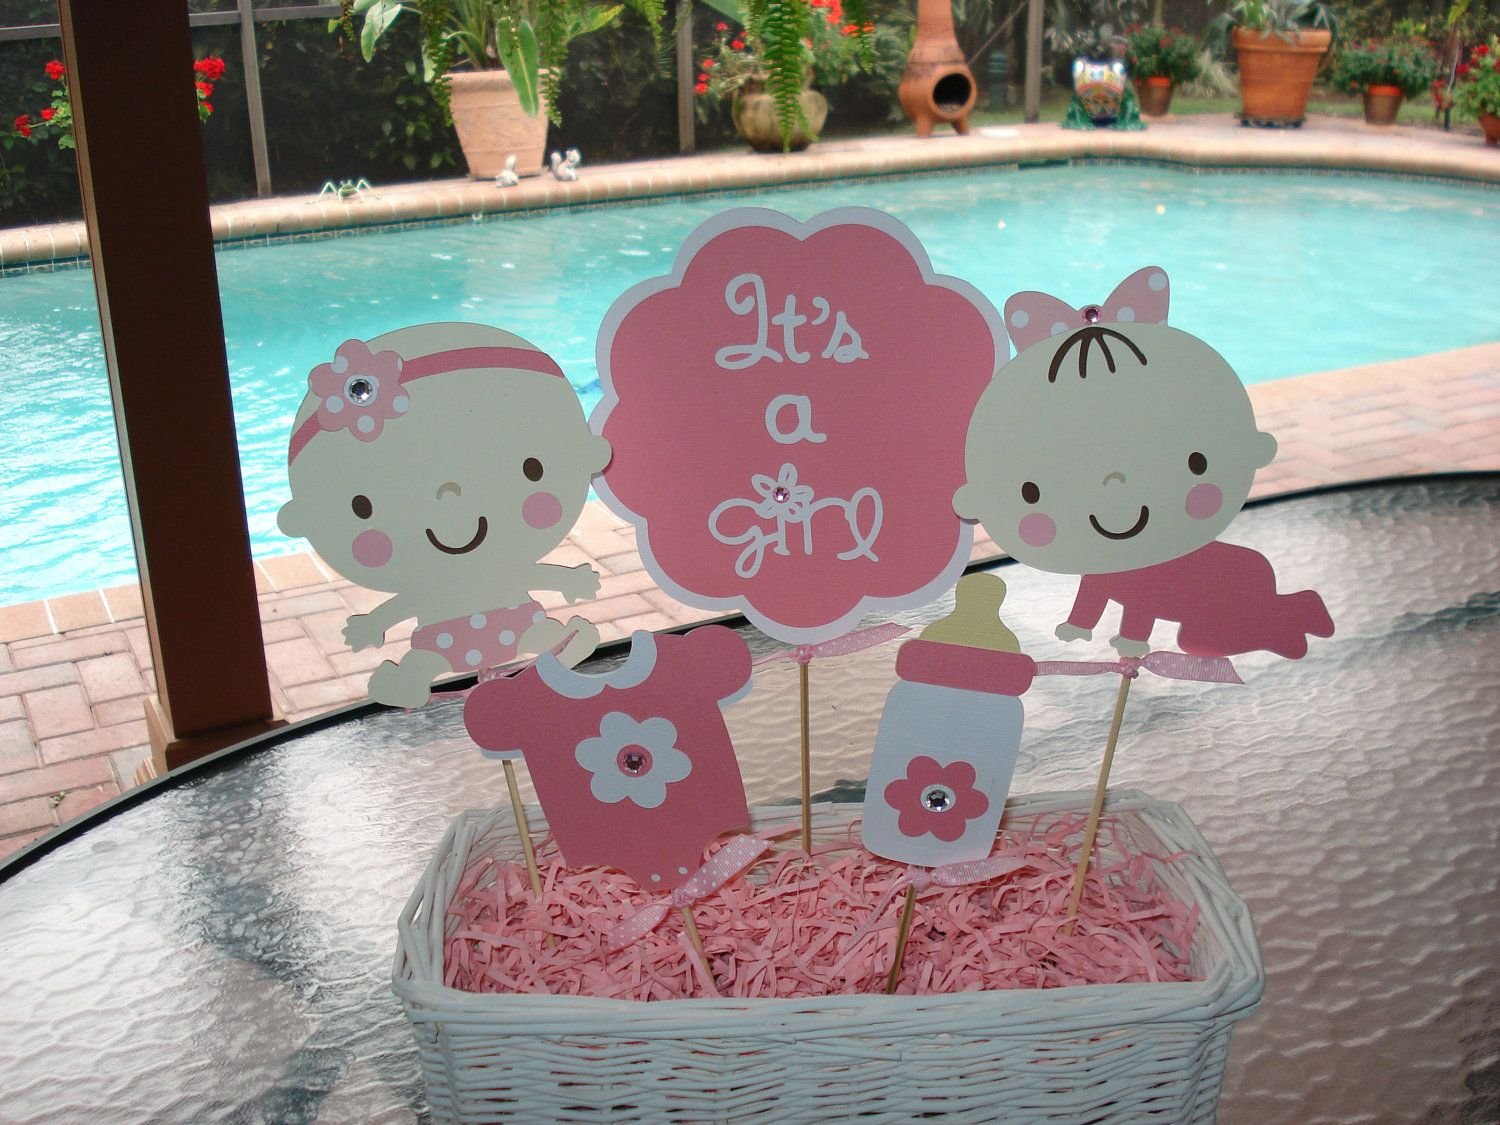 Images about baby shower on pinterest centerpieces unique baby - Baby Shower Centerpieces Baby Shower Centerpiece Set Of 5 Picks Baby Shower Gift